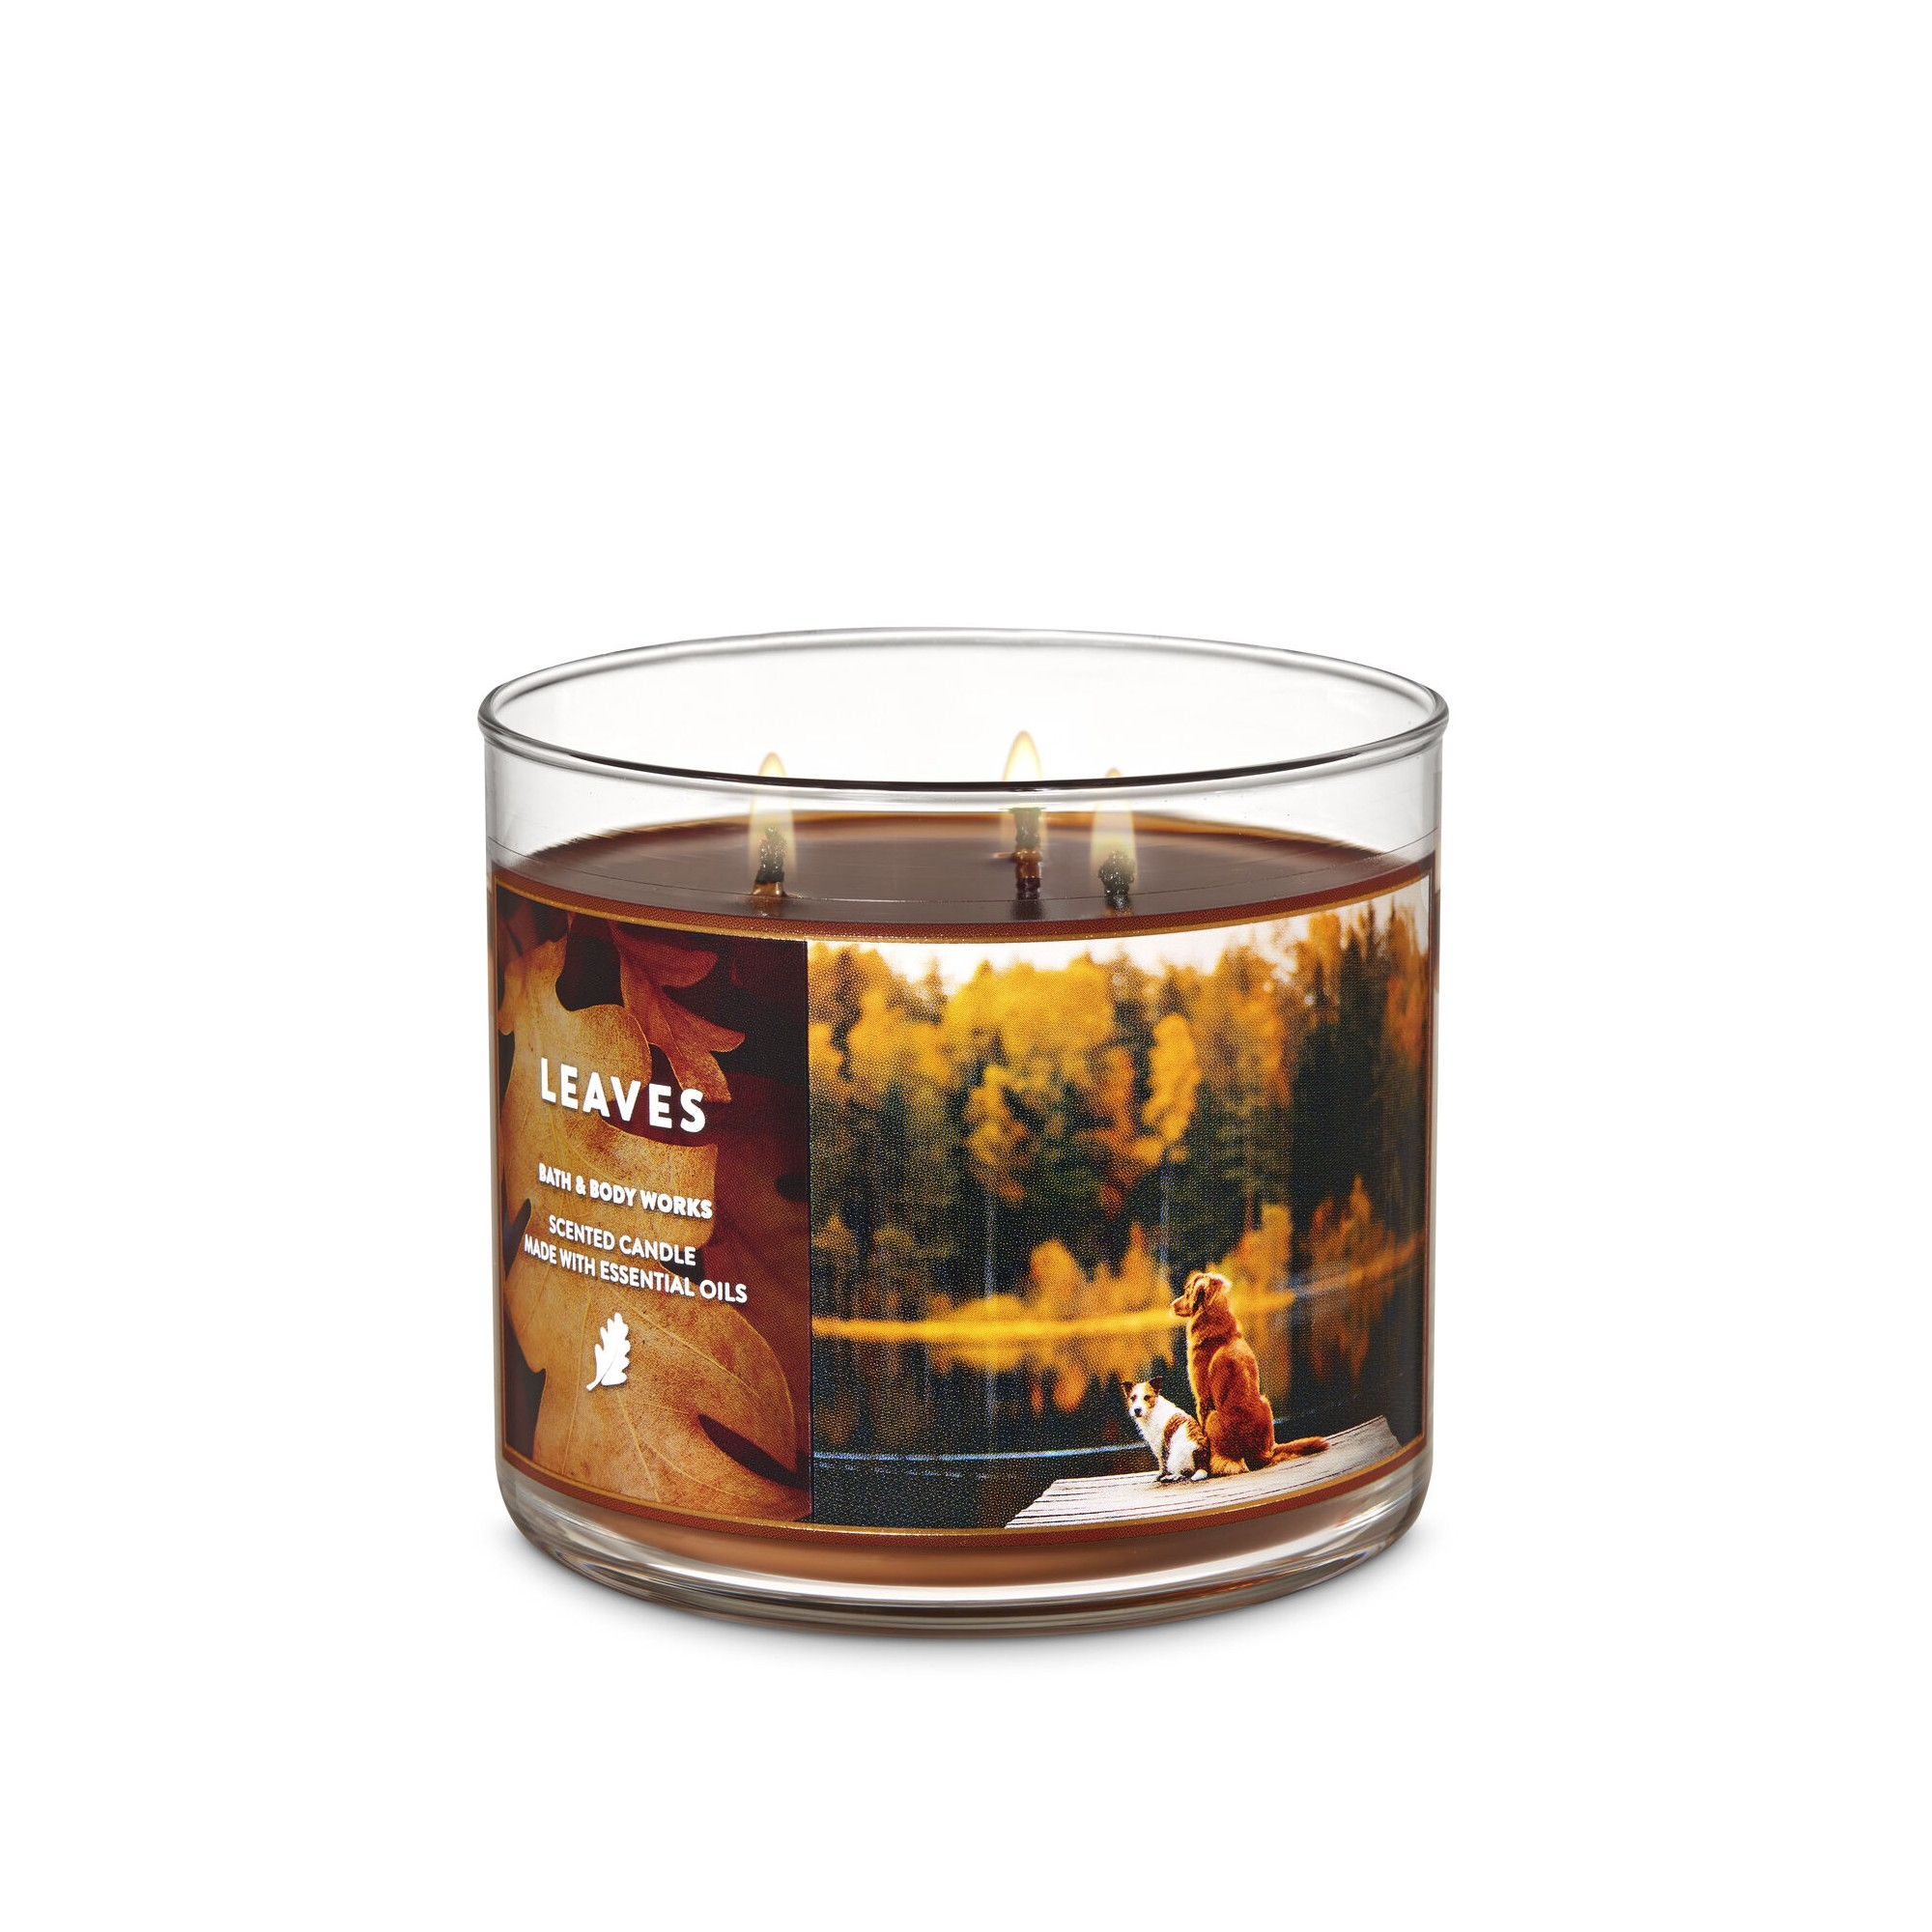 Bath & Body Works Leaves 3 Wick Scented Candle